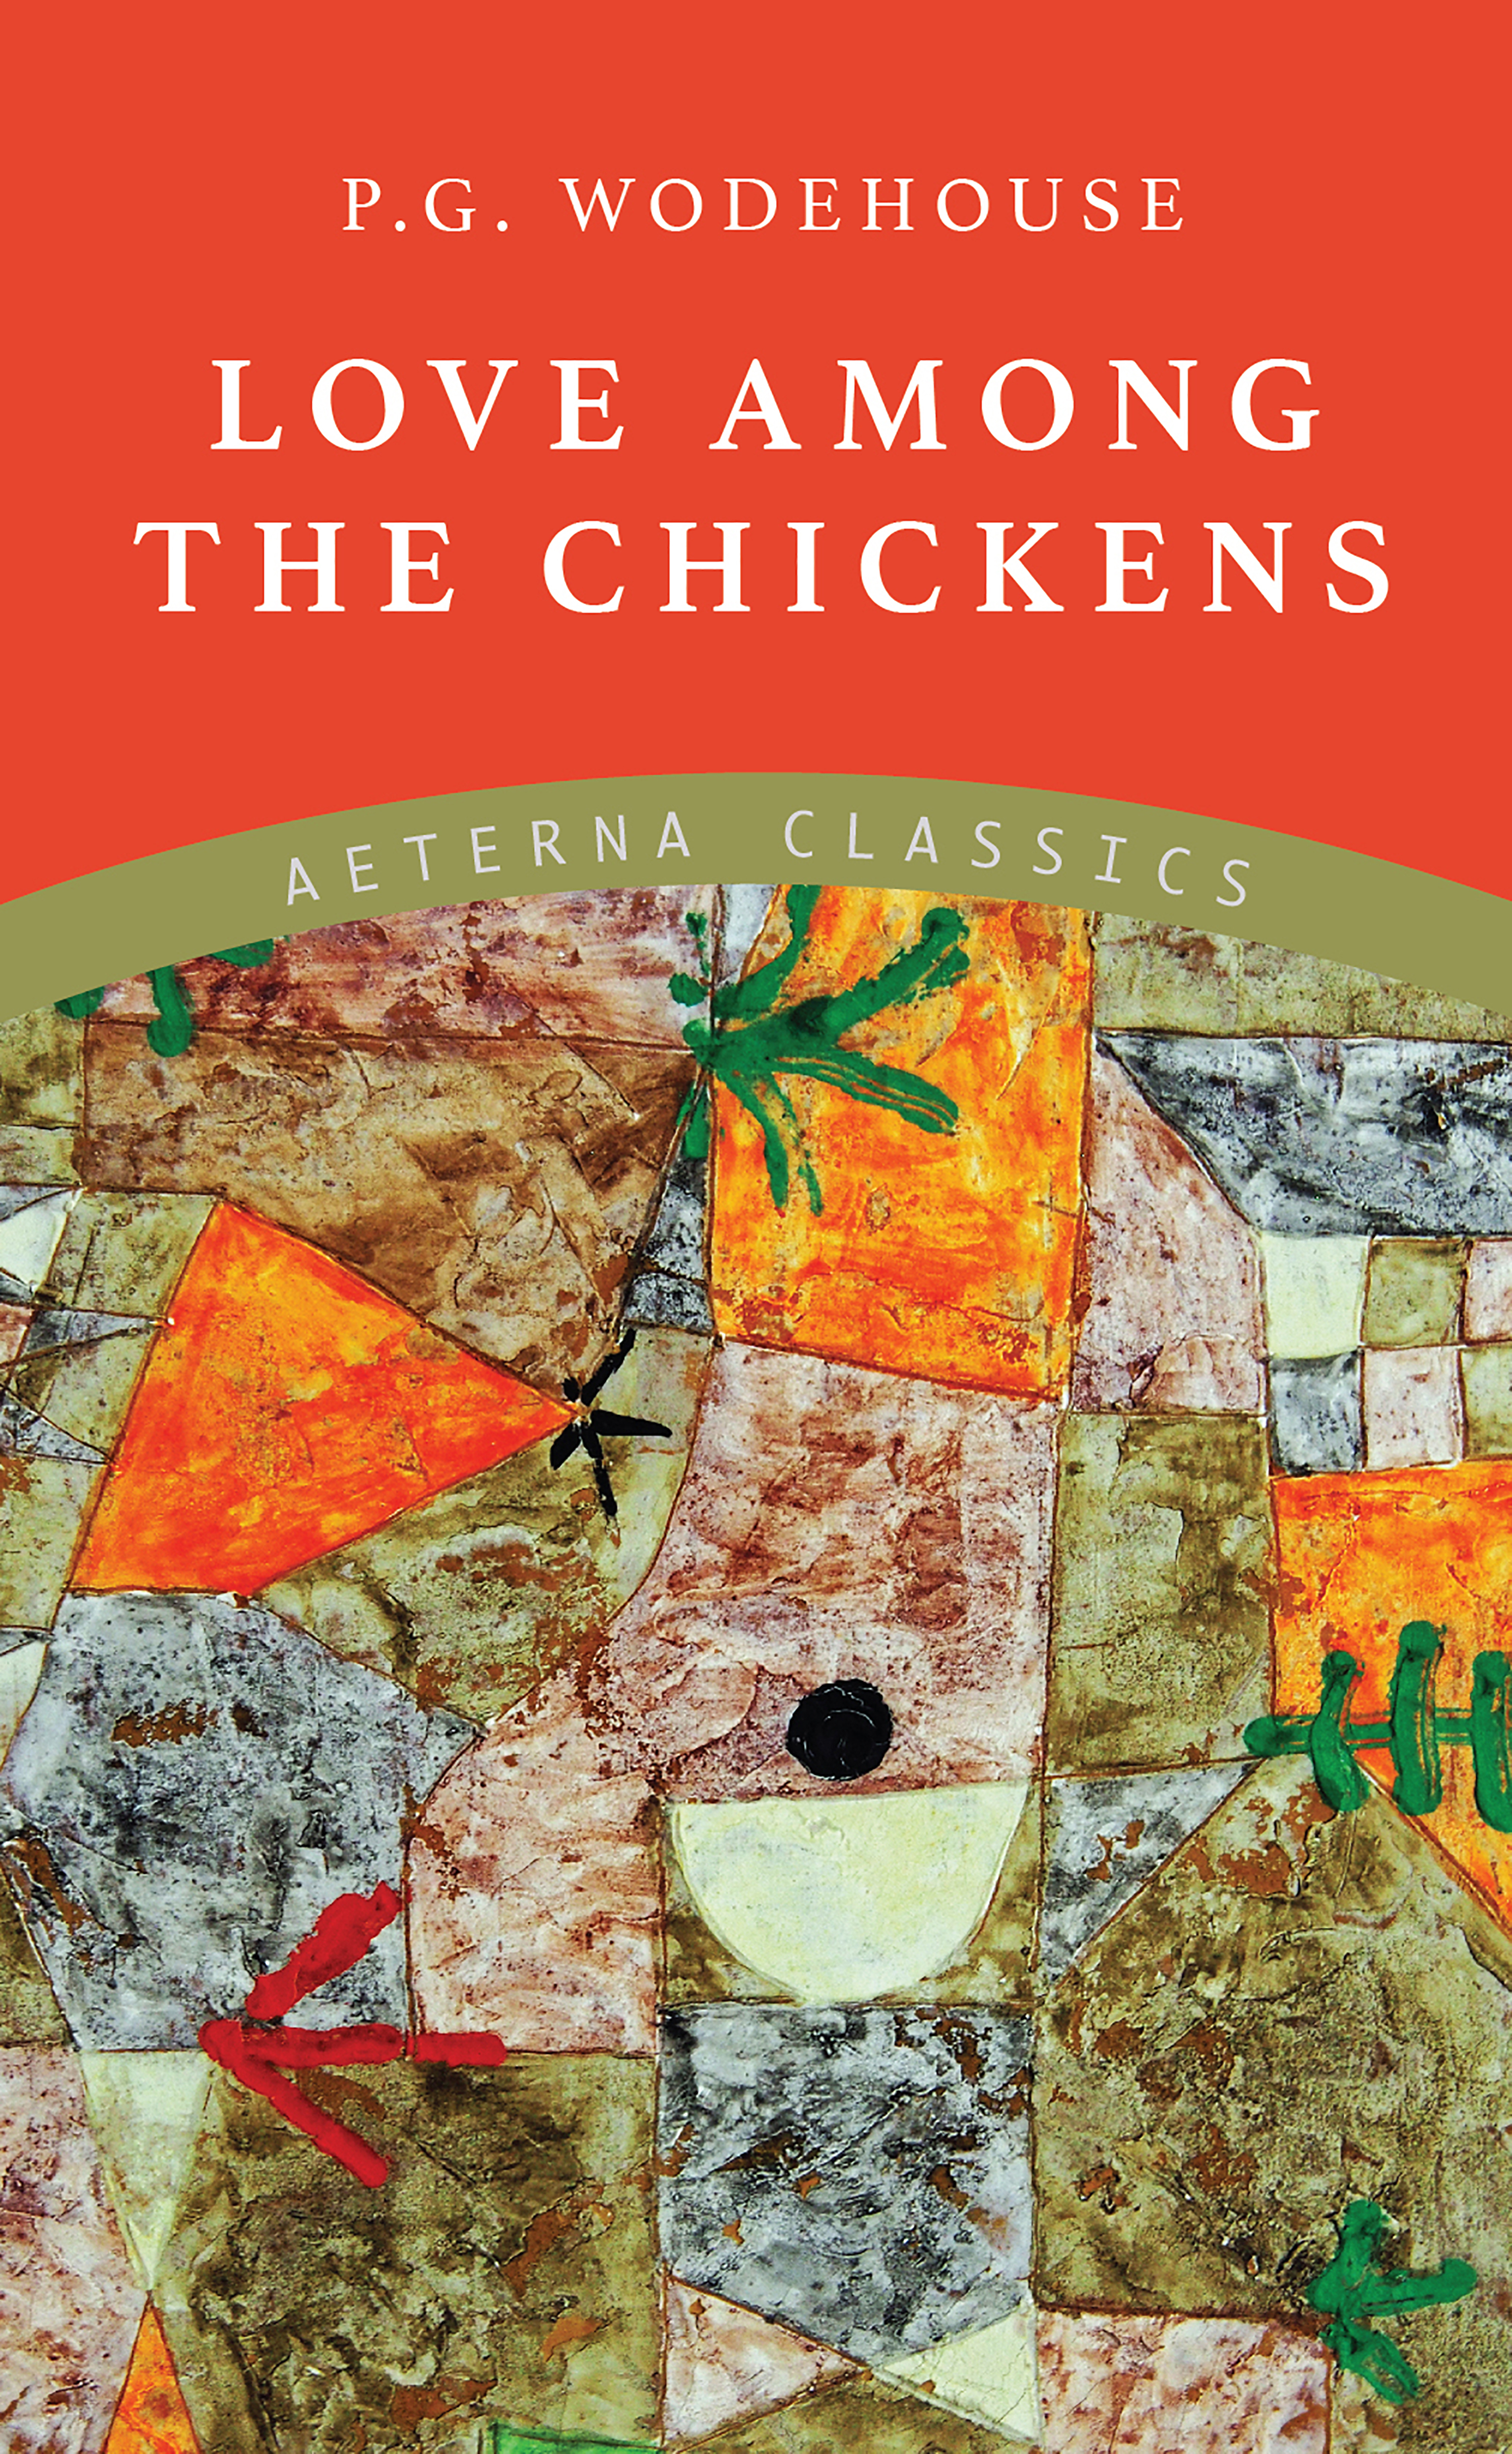 P. G. Wodehouse Love Among the Chickens p g wodehouse the gold bat by p g wodehouse fiction literary